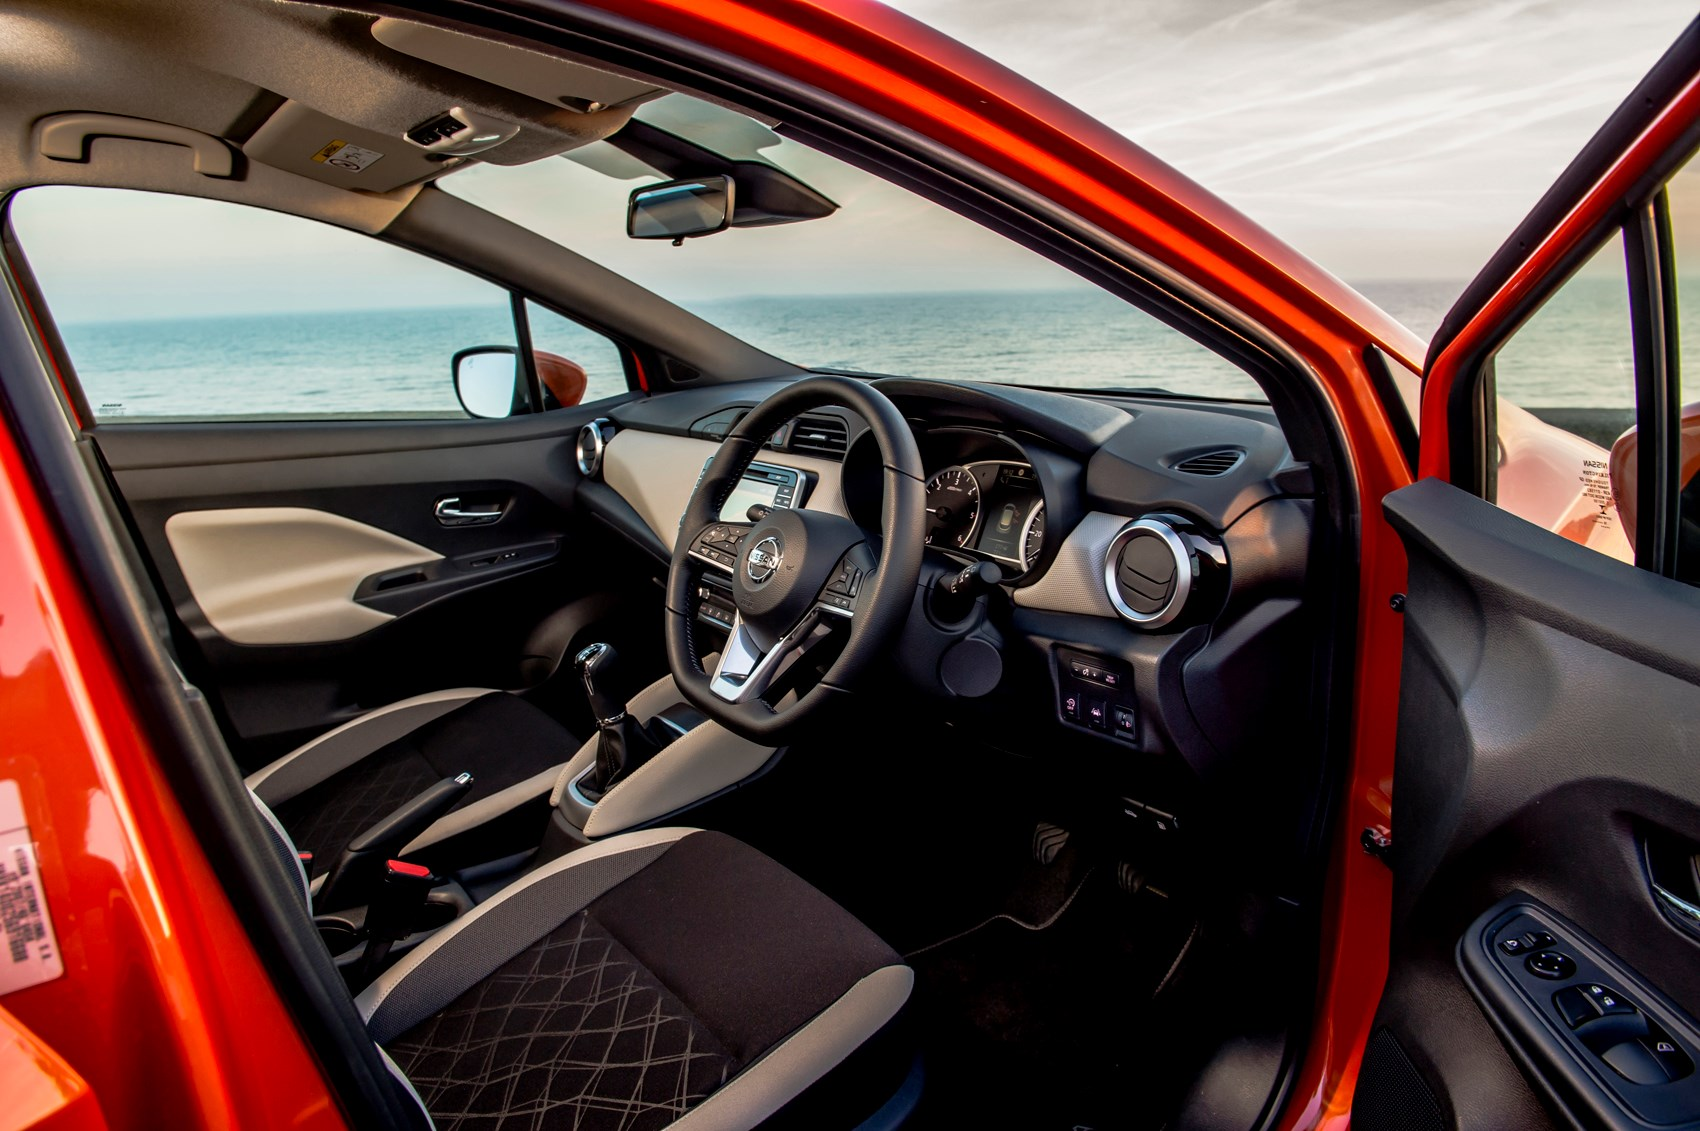 Nissan Micra Hatchback (2017 - ) Features, Equipment and Accessories ...